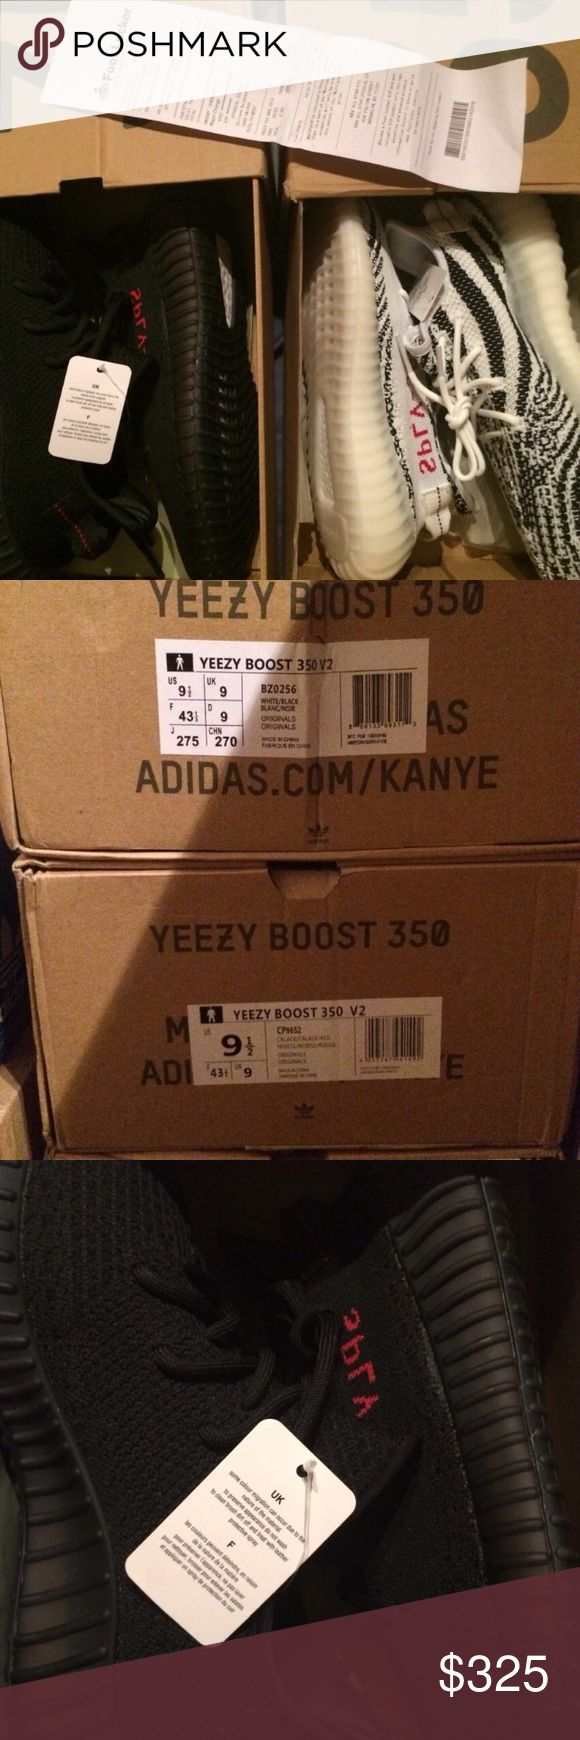 Yeezy Addias Bundles 🚨*Read Description*🚨 These are 1:1 UA's. Literally stitch for stitch, and they're a fraction of the price. Comes with the original boxes. If you want yeezys but not yeezy money these are for you. In the Listing you get the zebras with Breds, but I'm open to any other bundles. Size 9.5/10. COMMENT IF YOU WANT ANOTHER SIZE/Bundle. Yeezy Shoes Sneakers